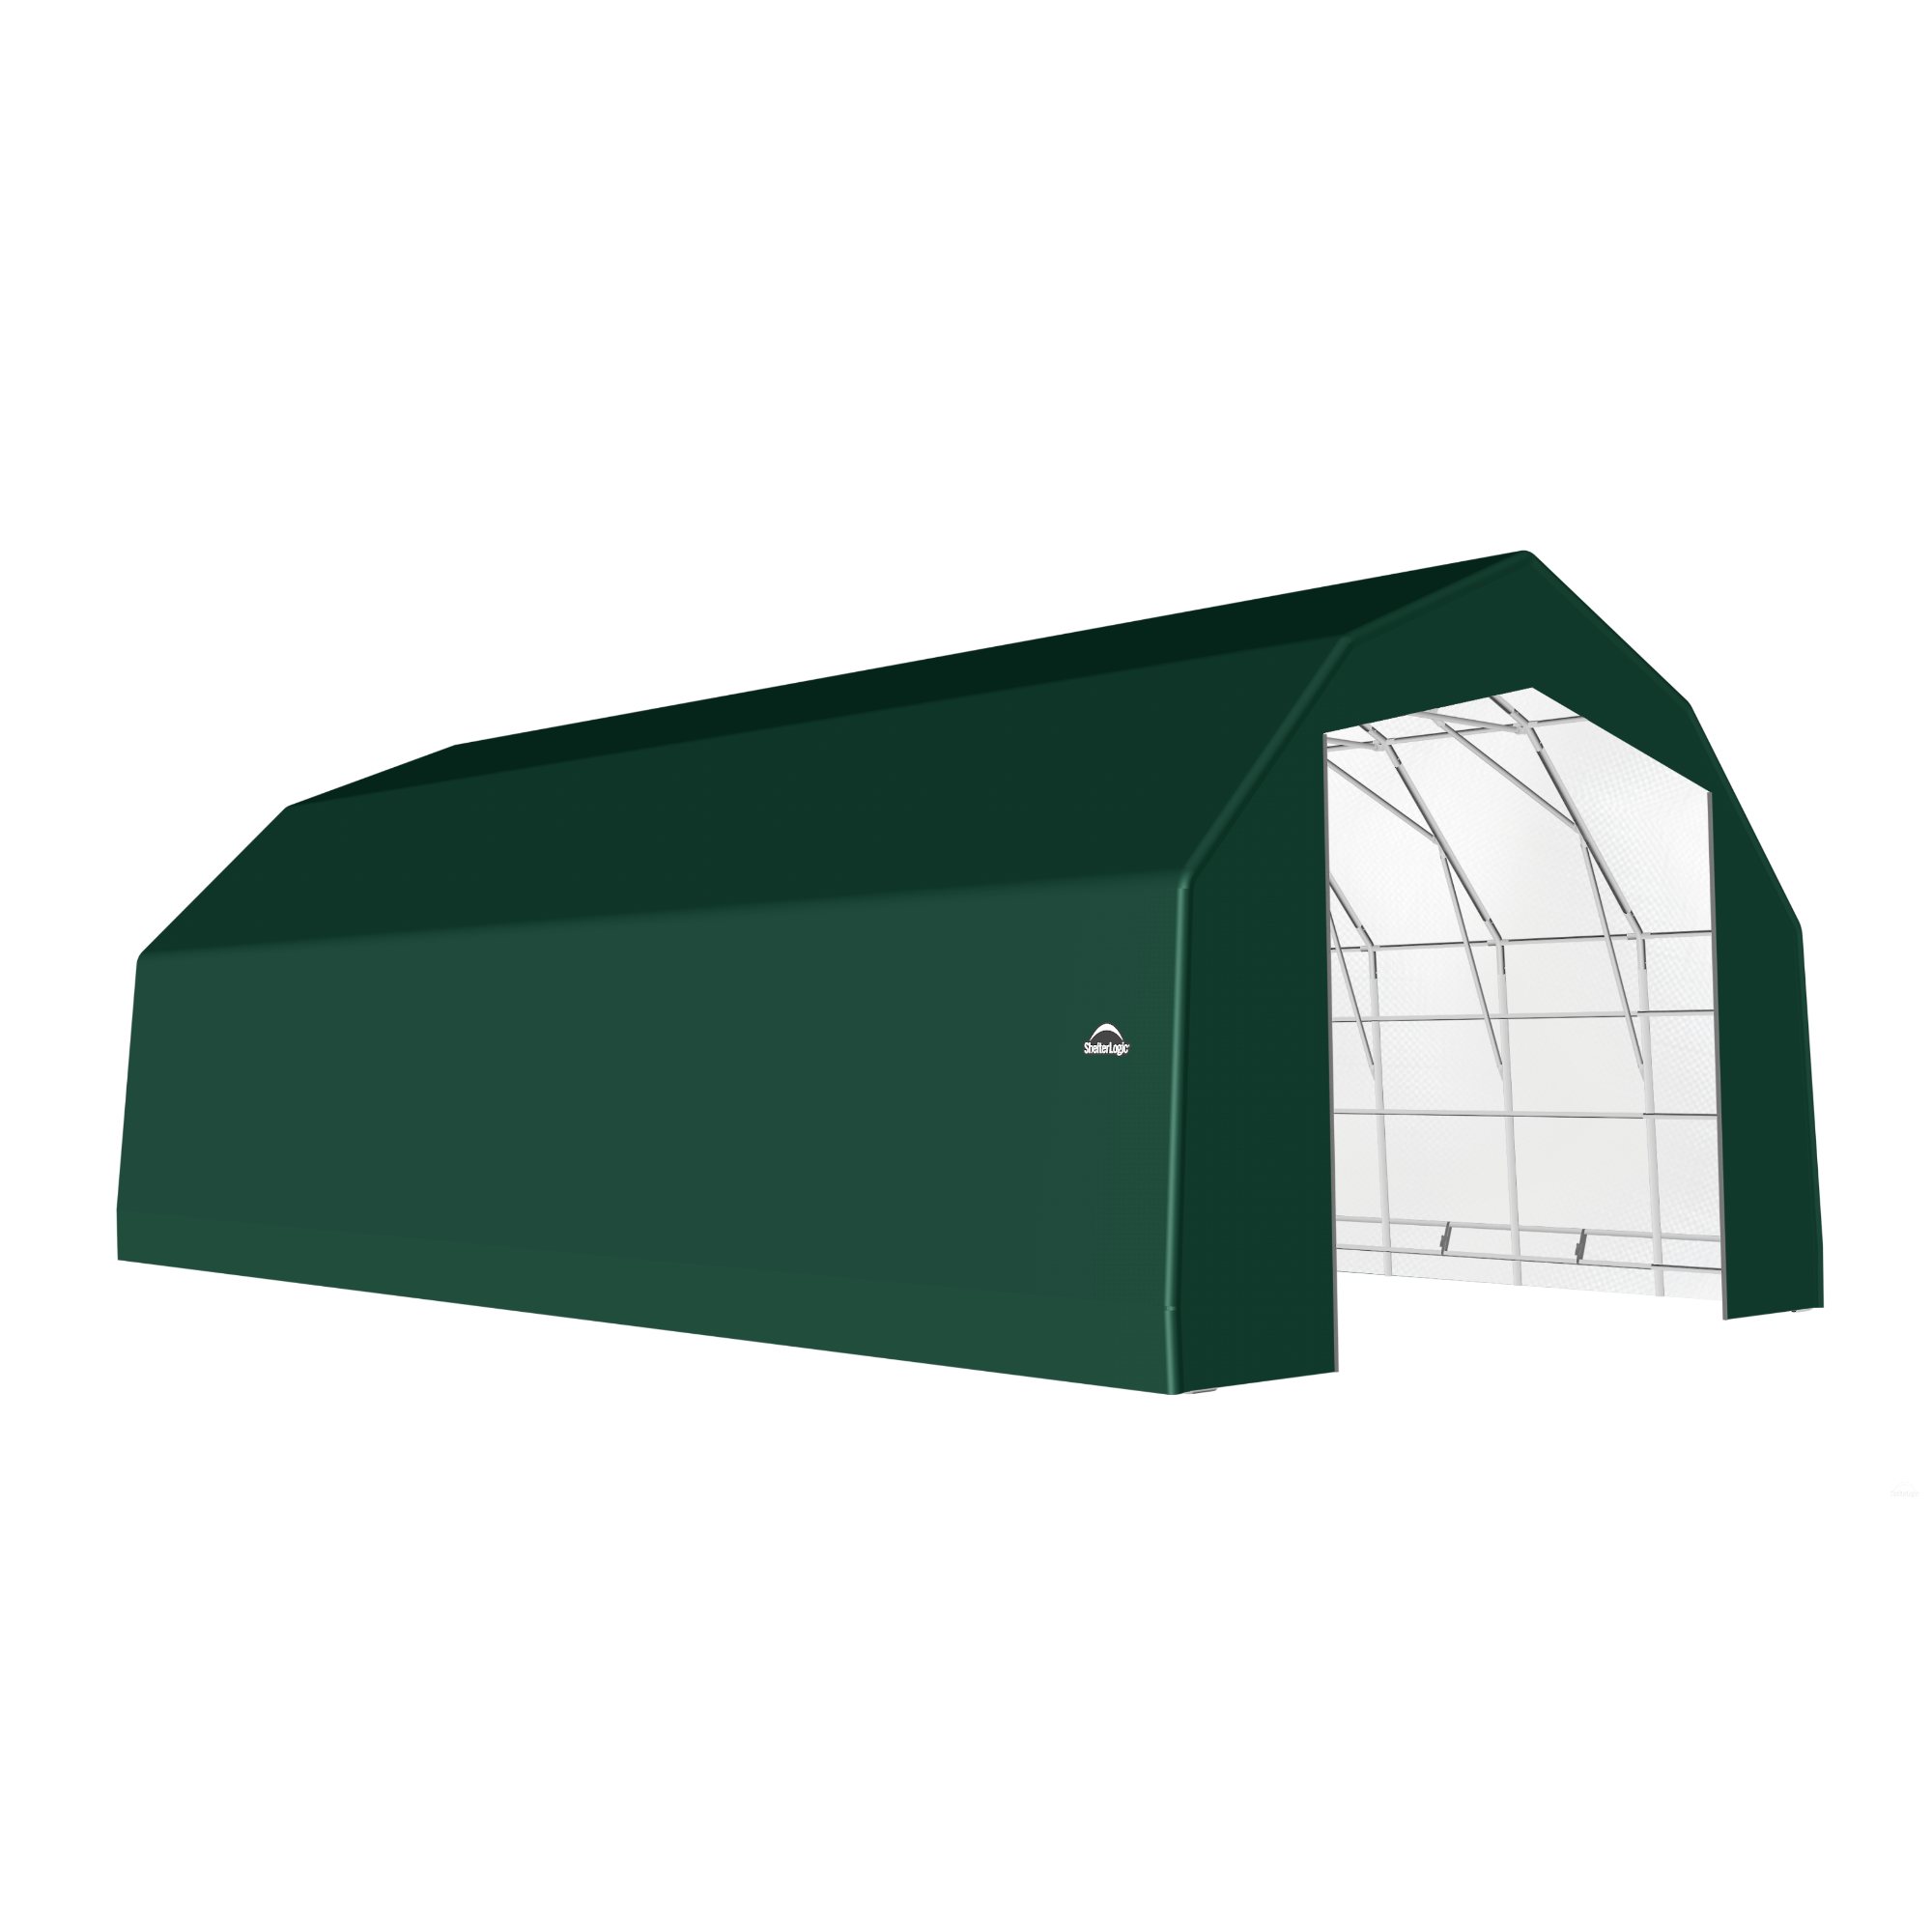 SP Barn 25X48X17 Green 14 oz PE Shelter